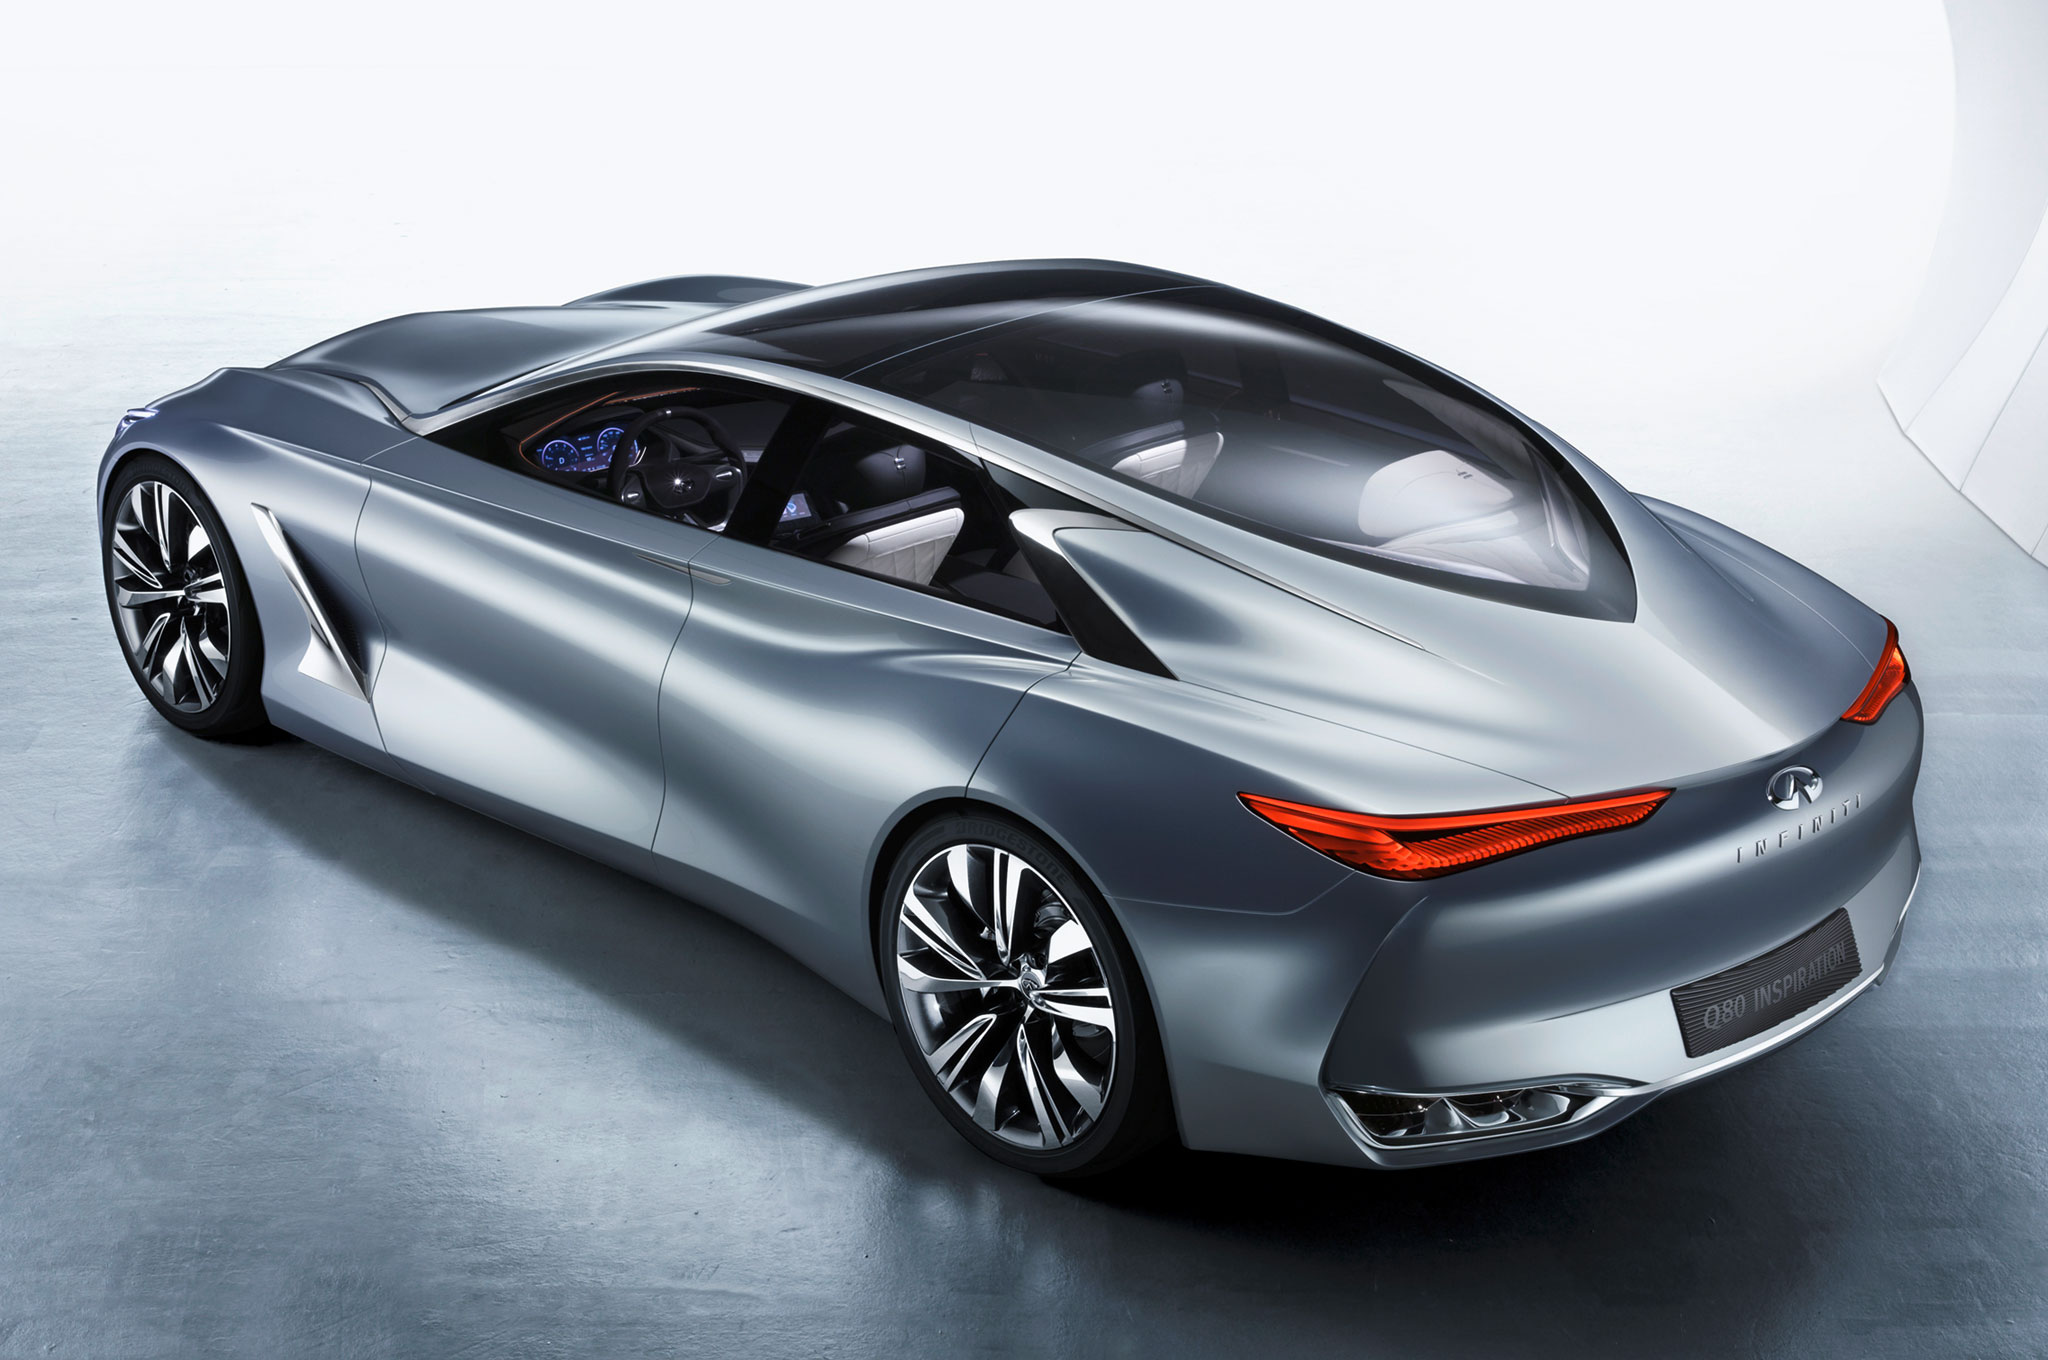 2018 infiniti supercar. brilliant supercar show more for 2018 infiniti supercar